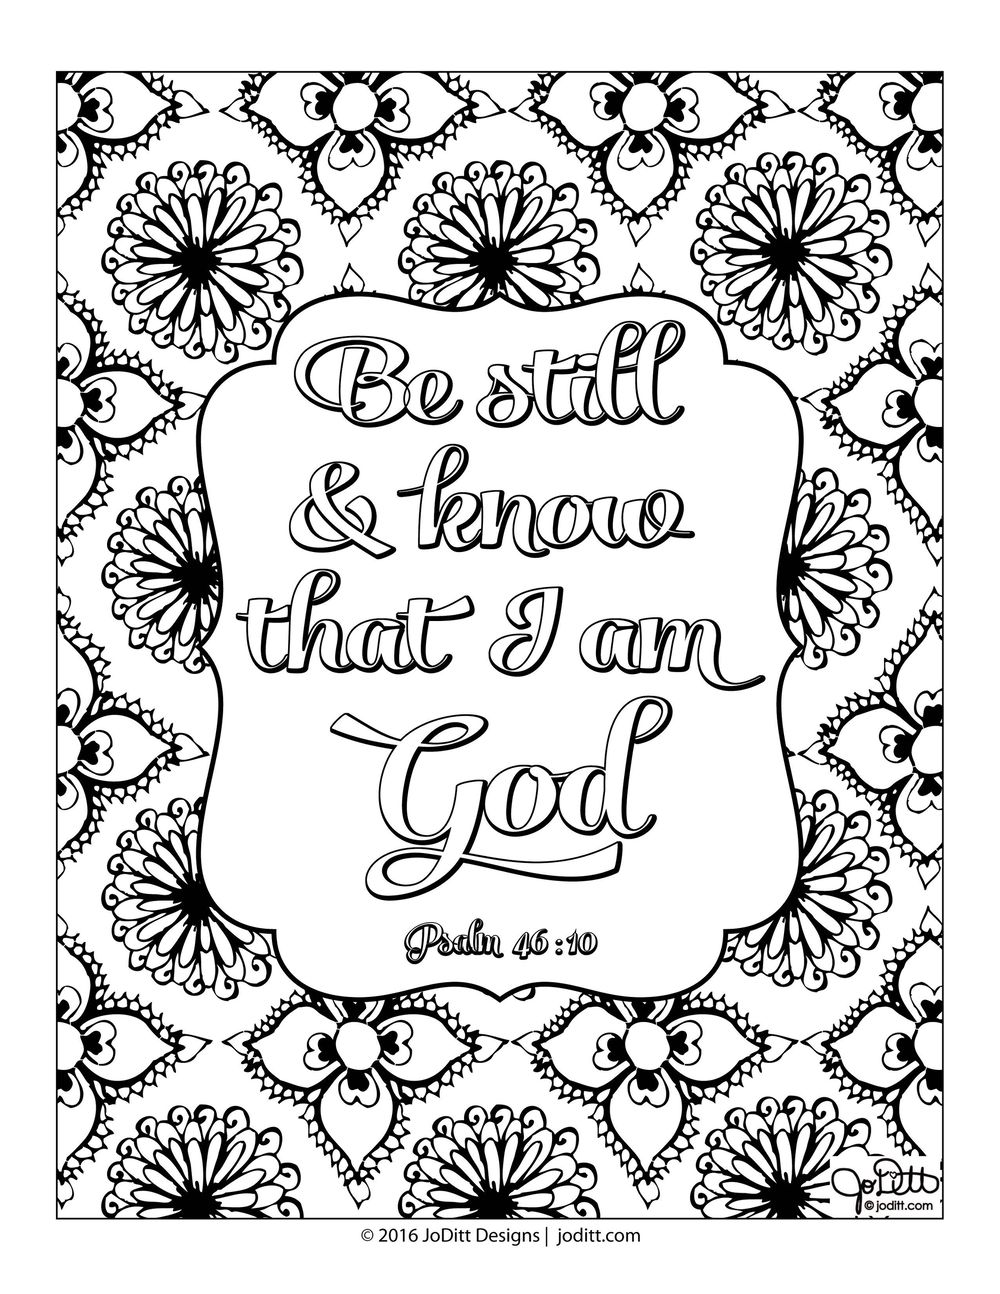 Coloring page -Be still - image 1 - student project